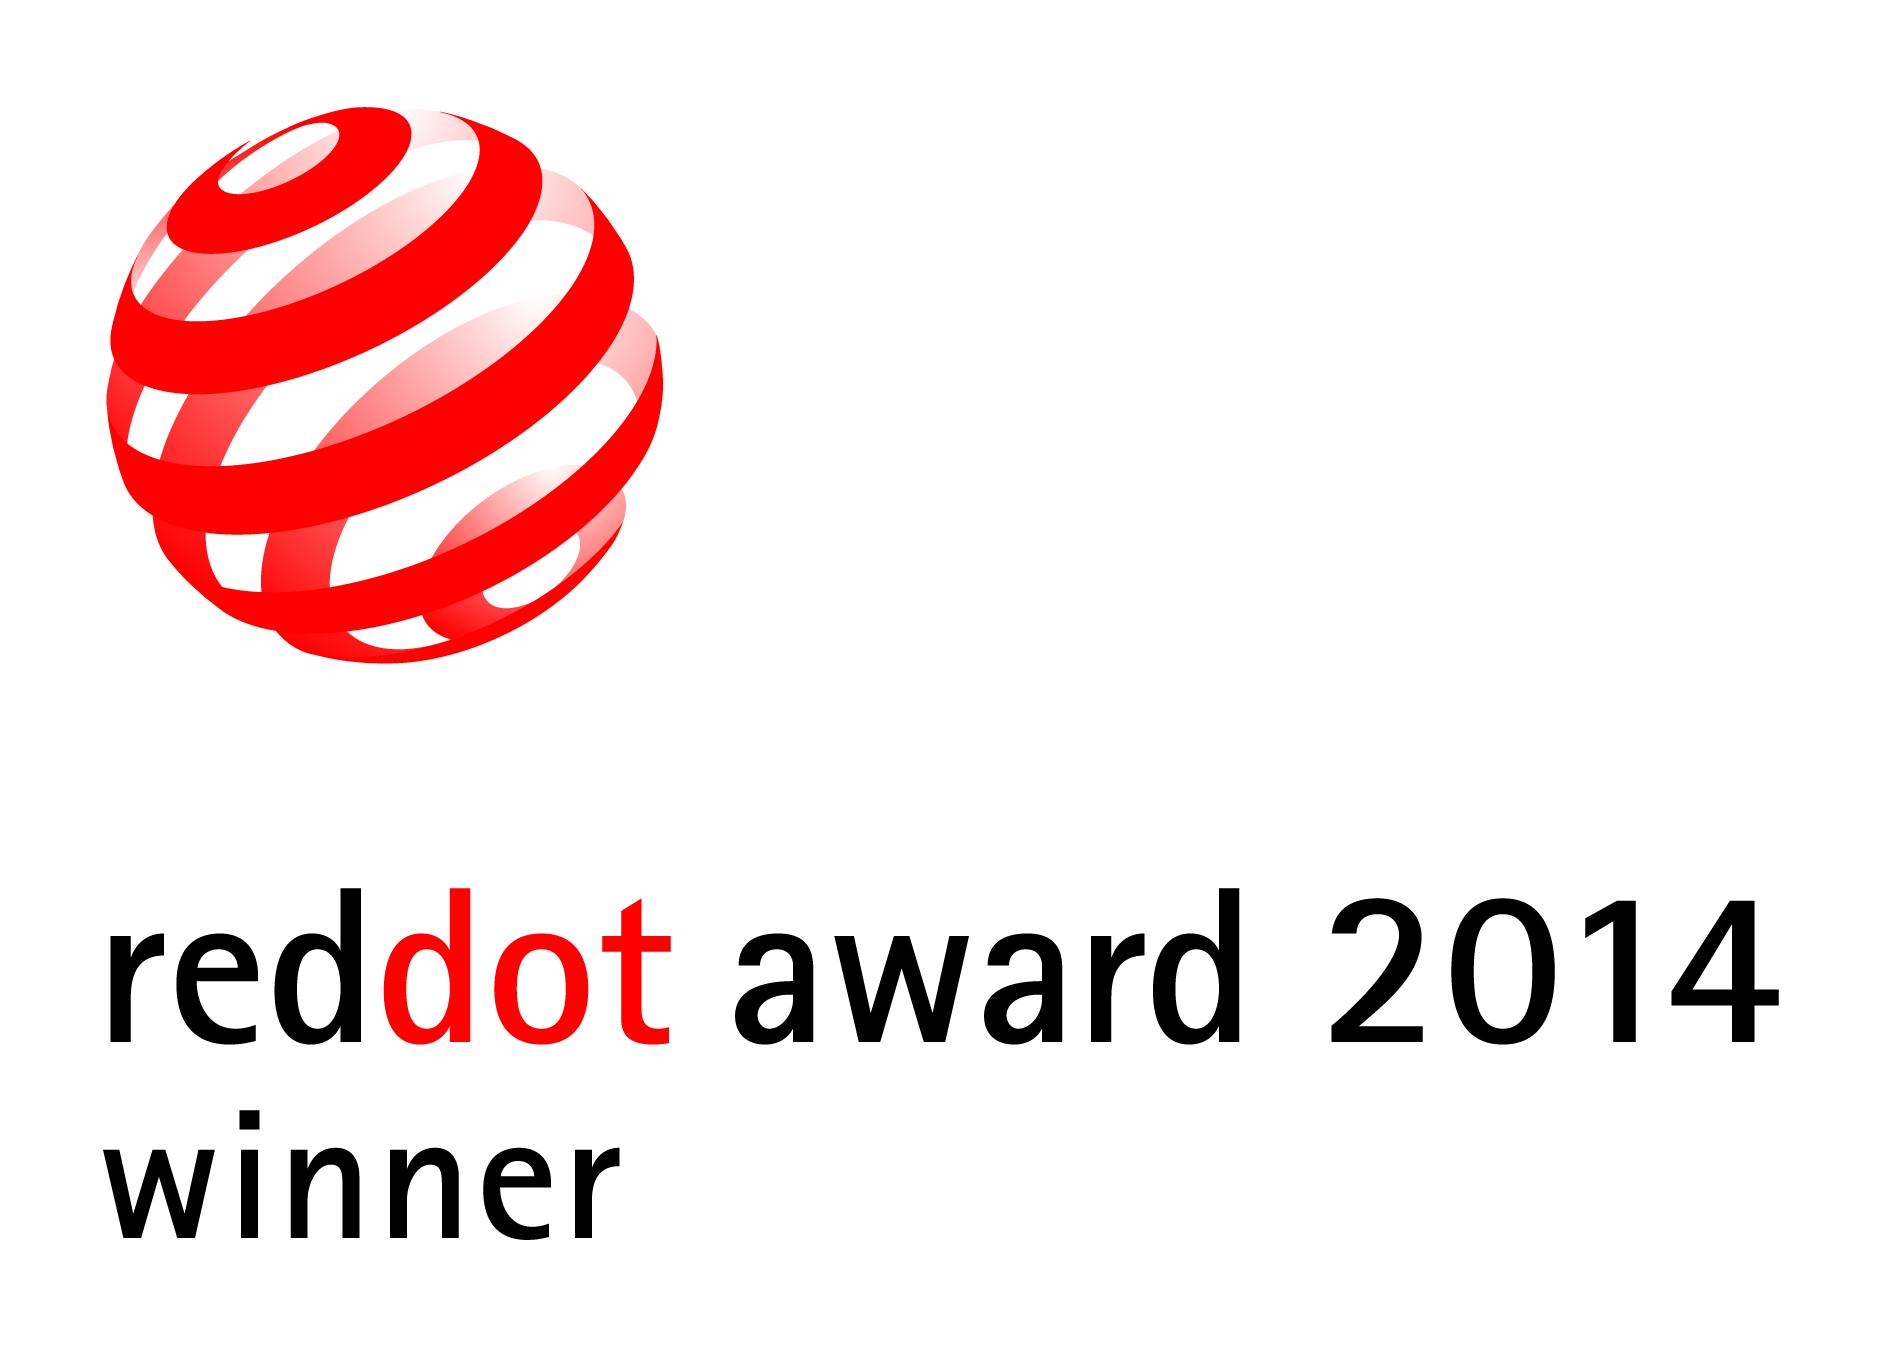 Reddot design award winner 2014